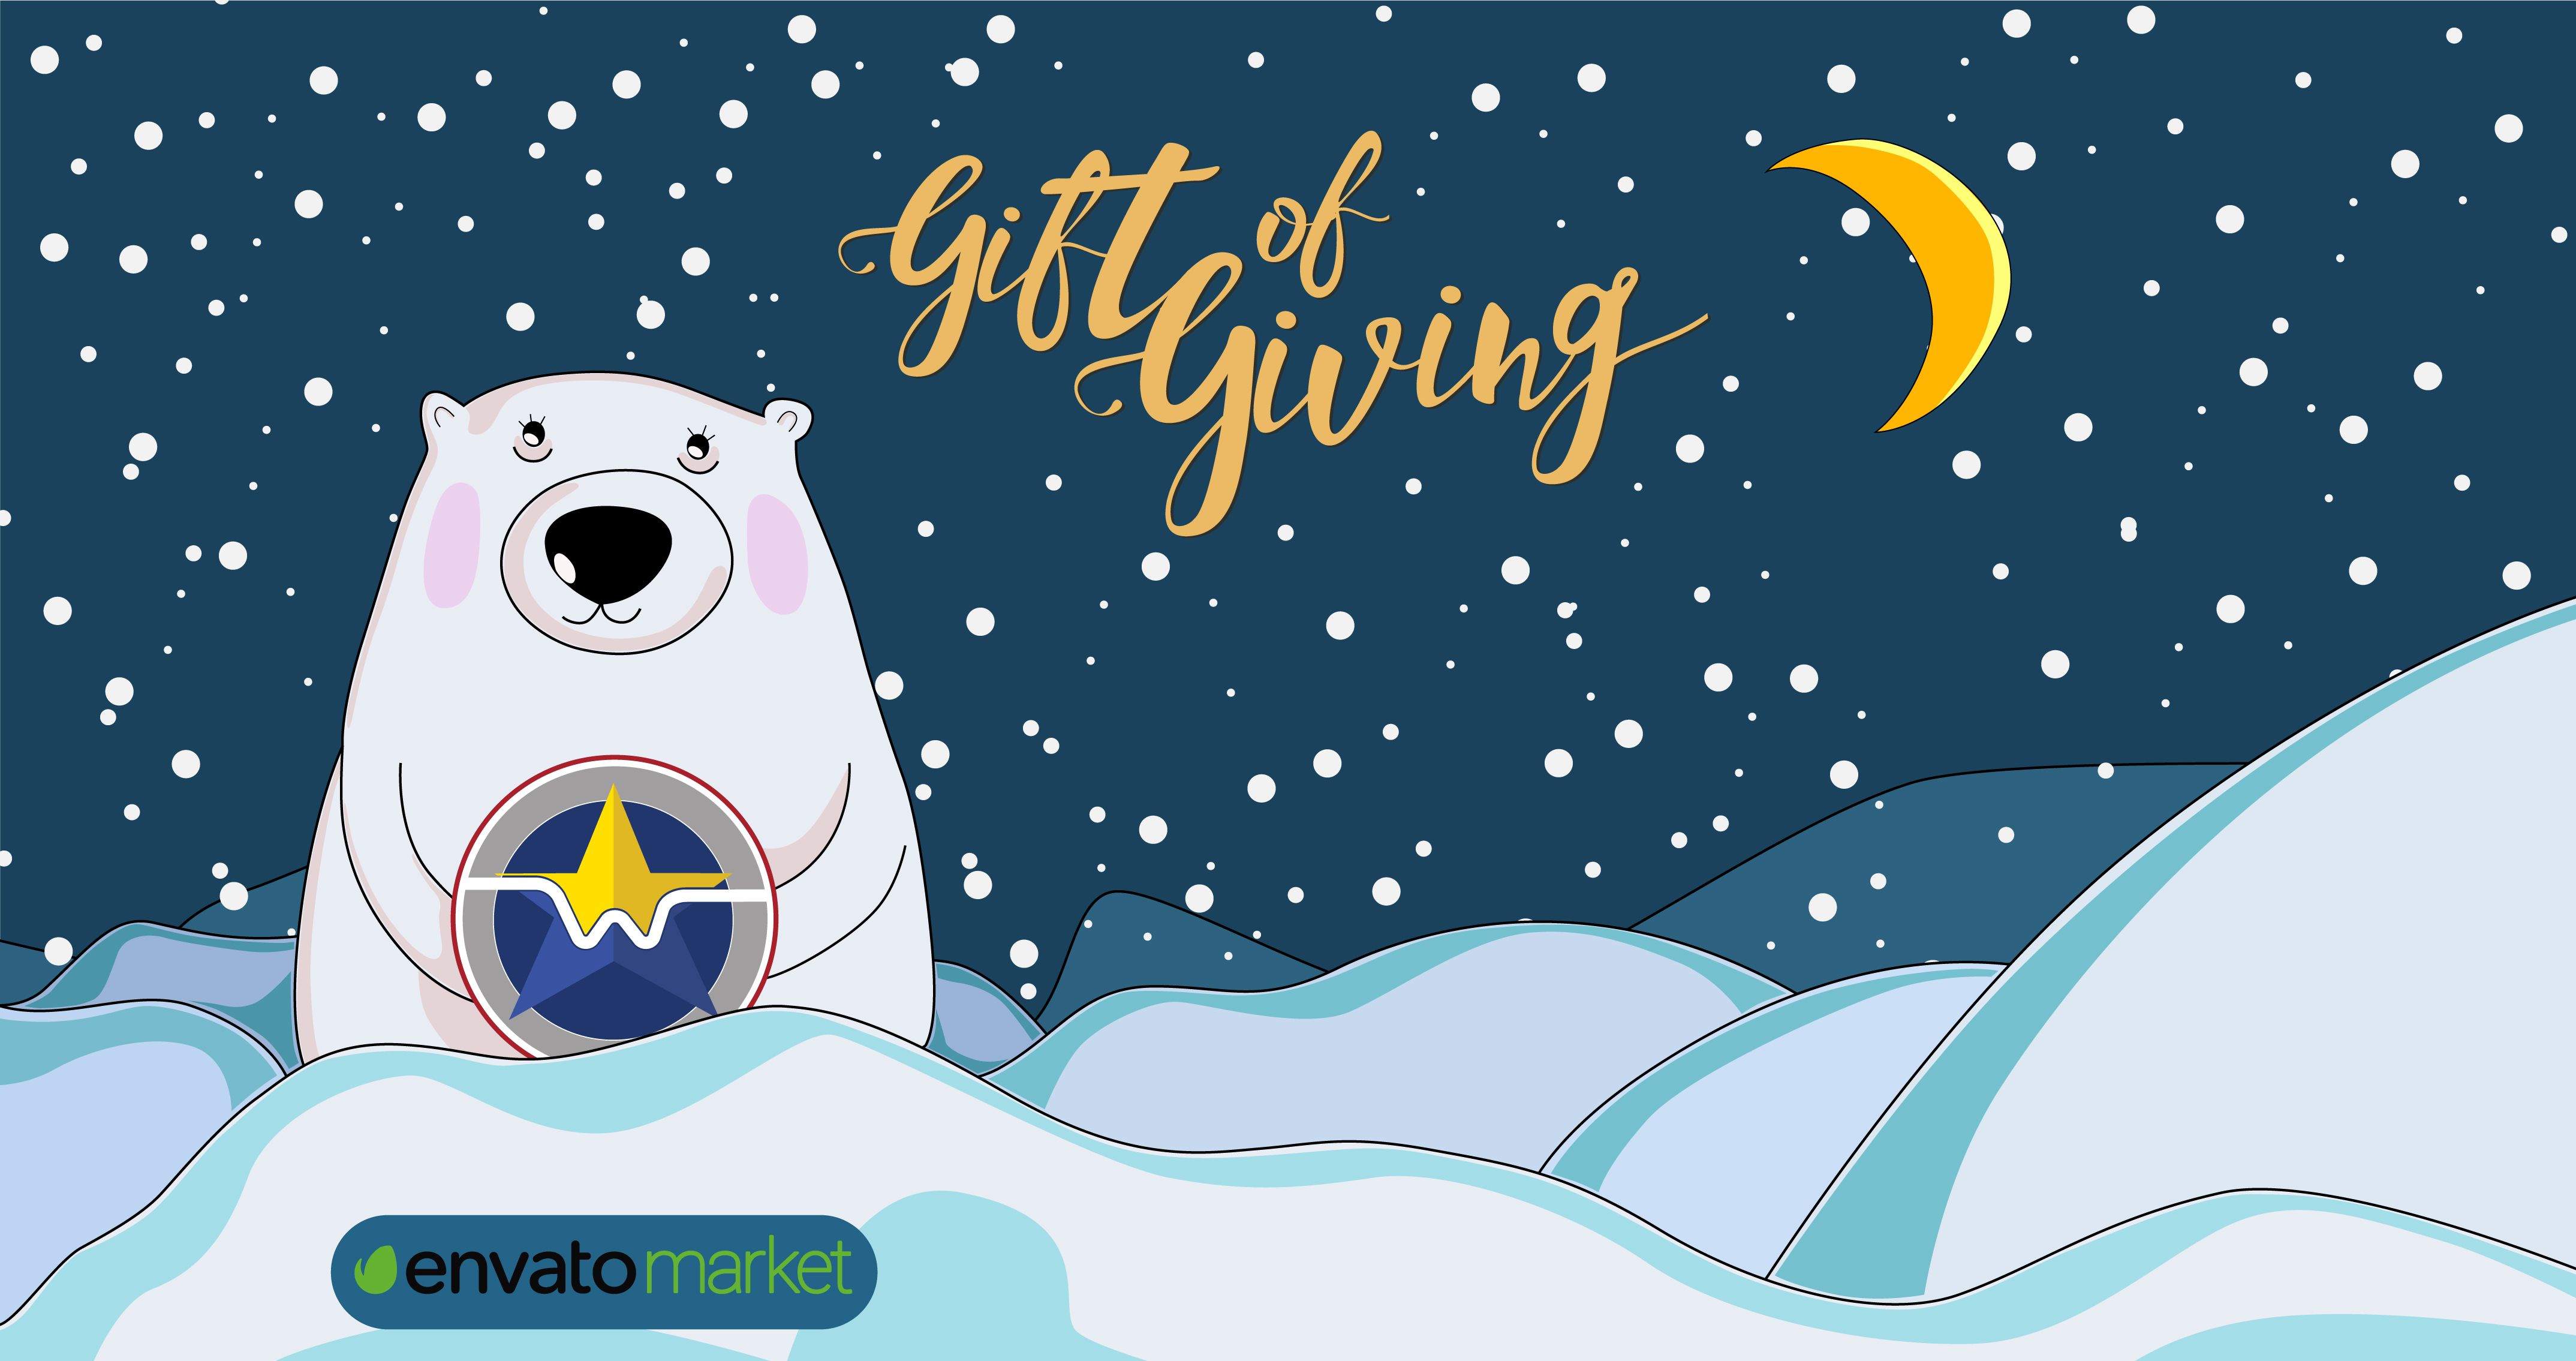 Gift of Giving campaign from Envato Market - free themes for WordPress, Magento, Drupal. Freebies for web-developers and site owners.